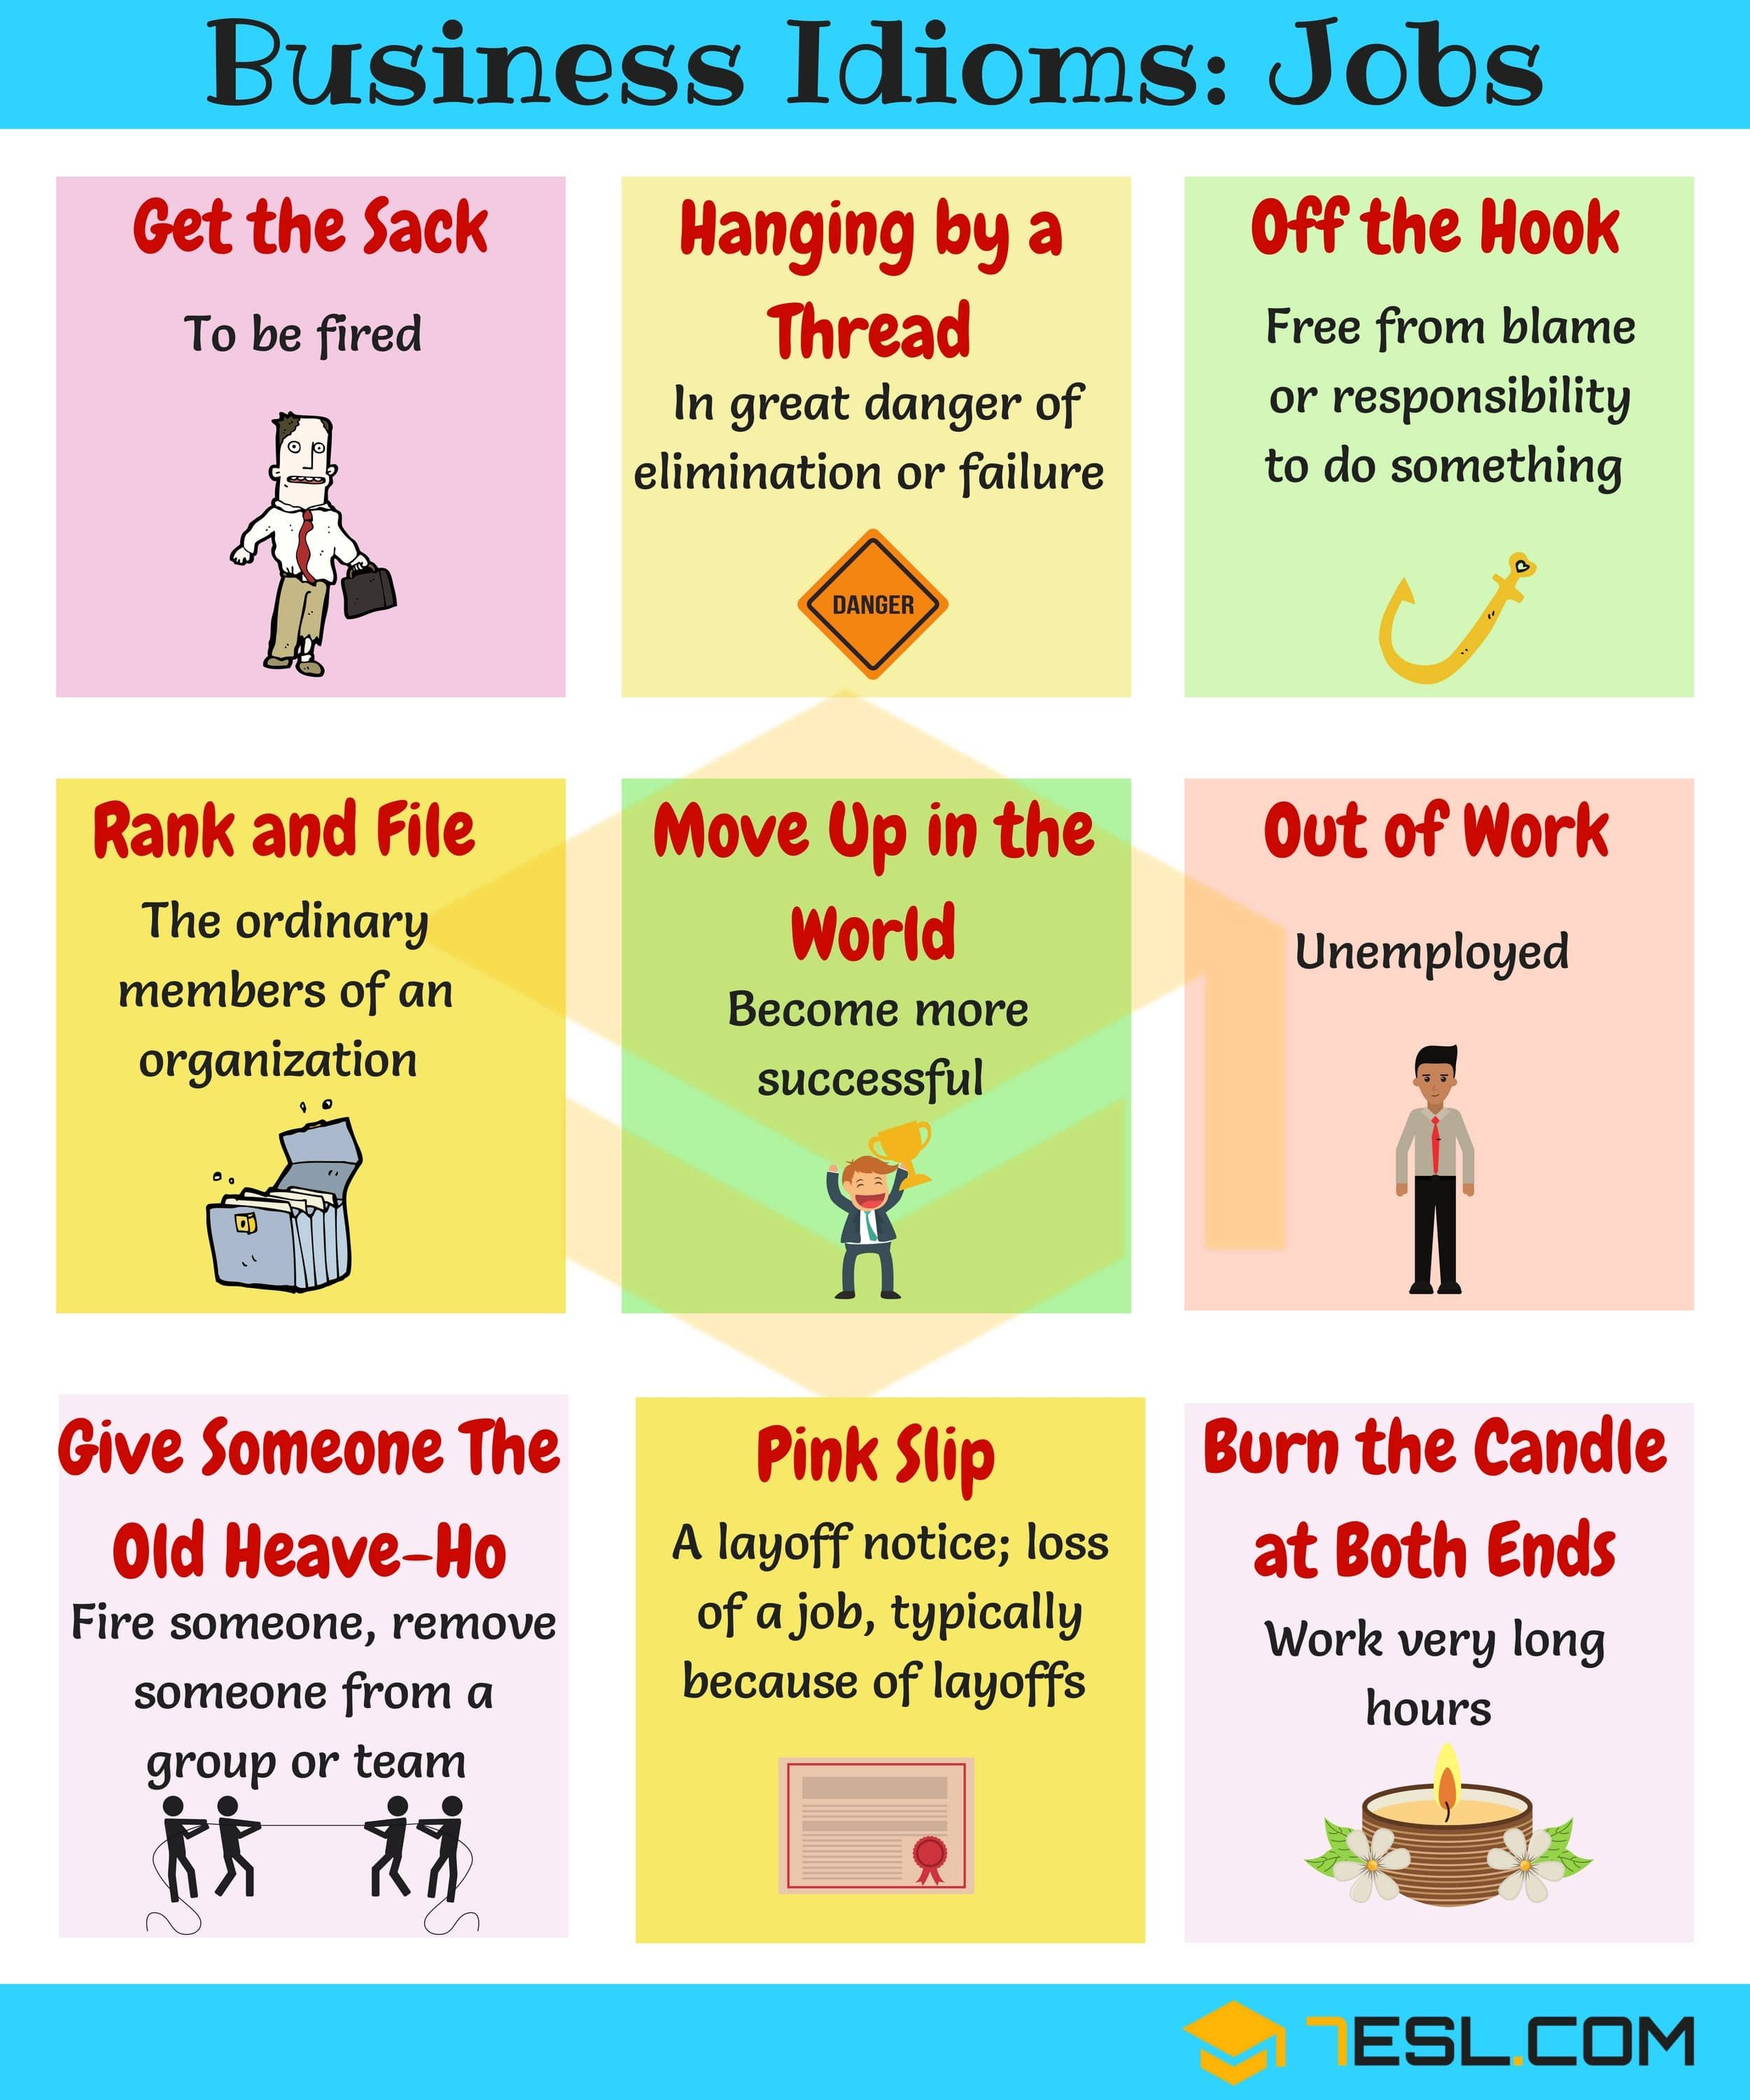 Job Idioms 10 Useful Idioms Amp Sayings About Jobs